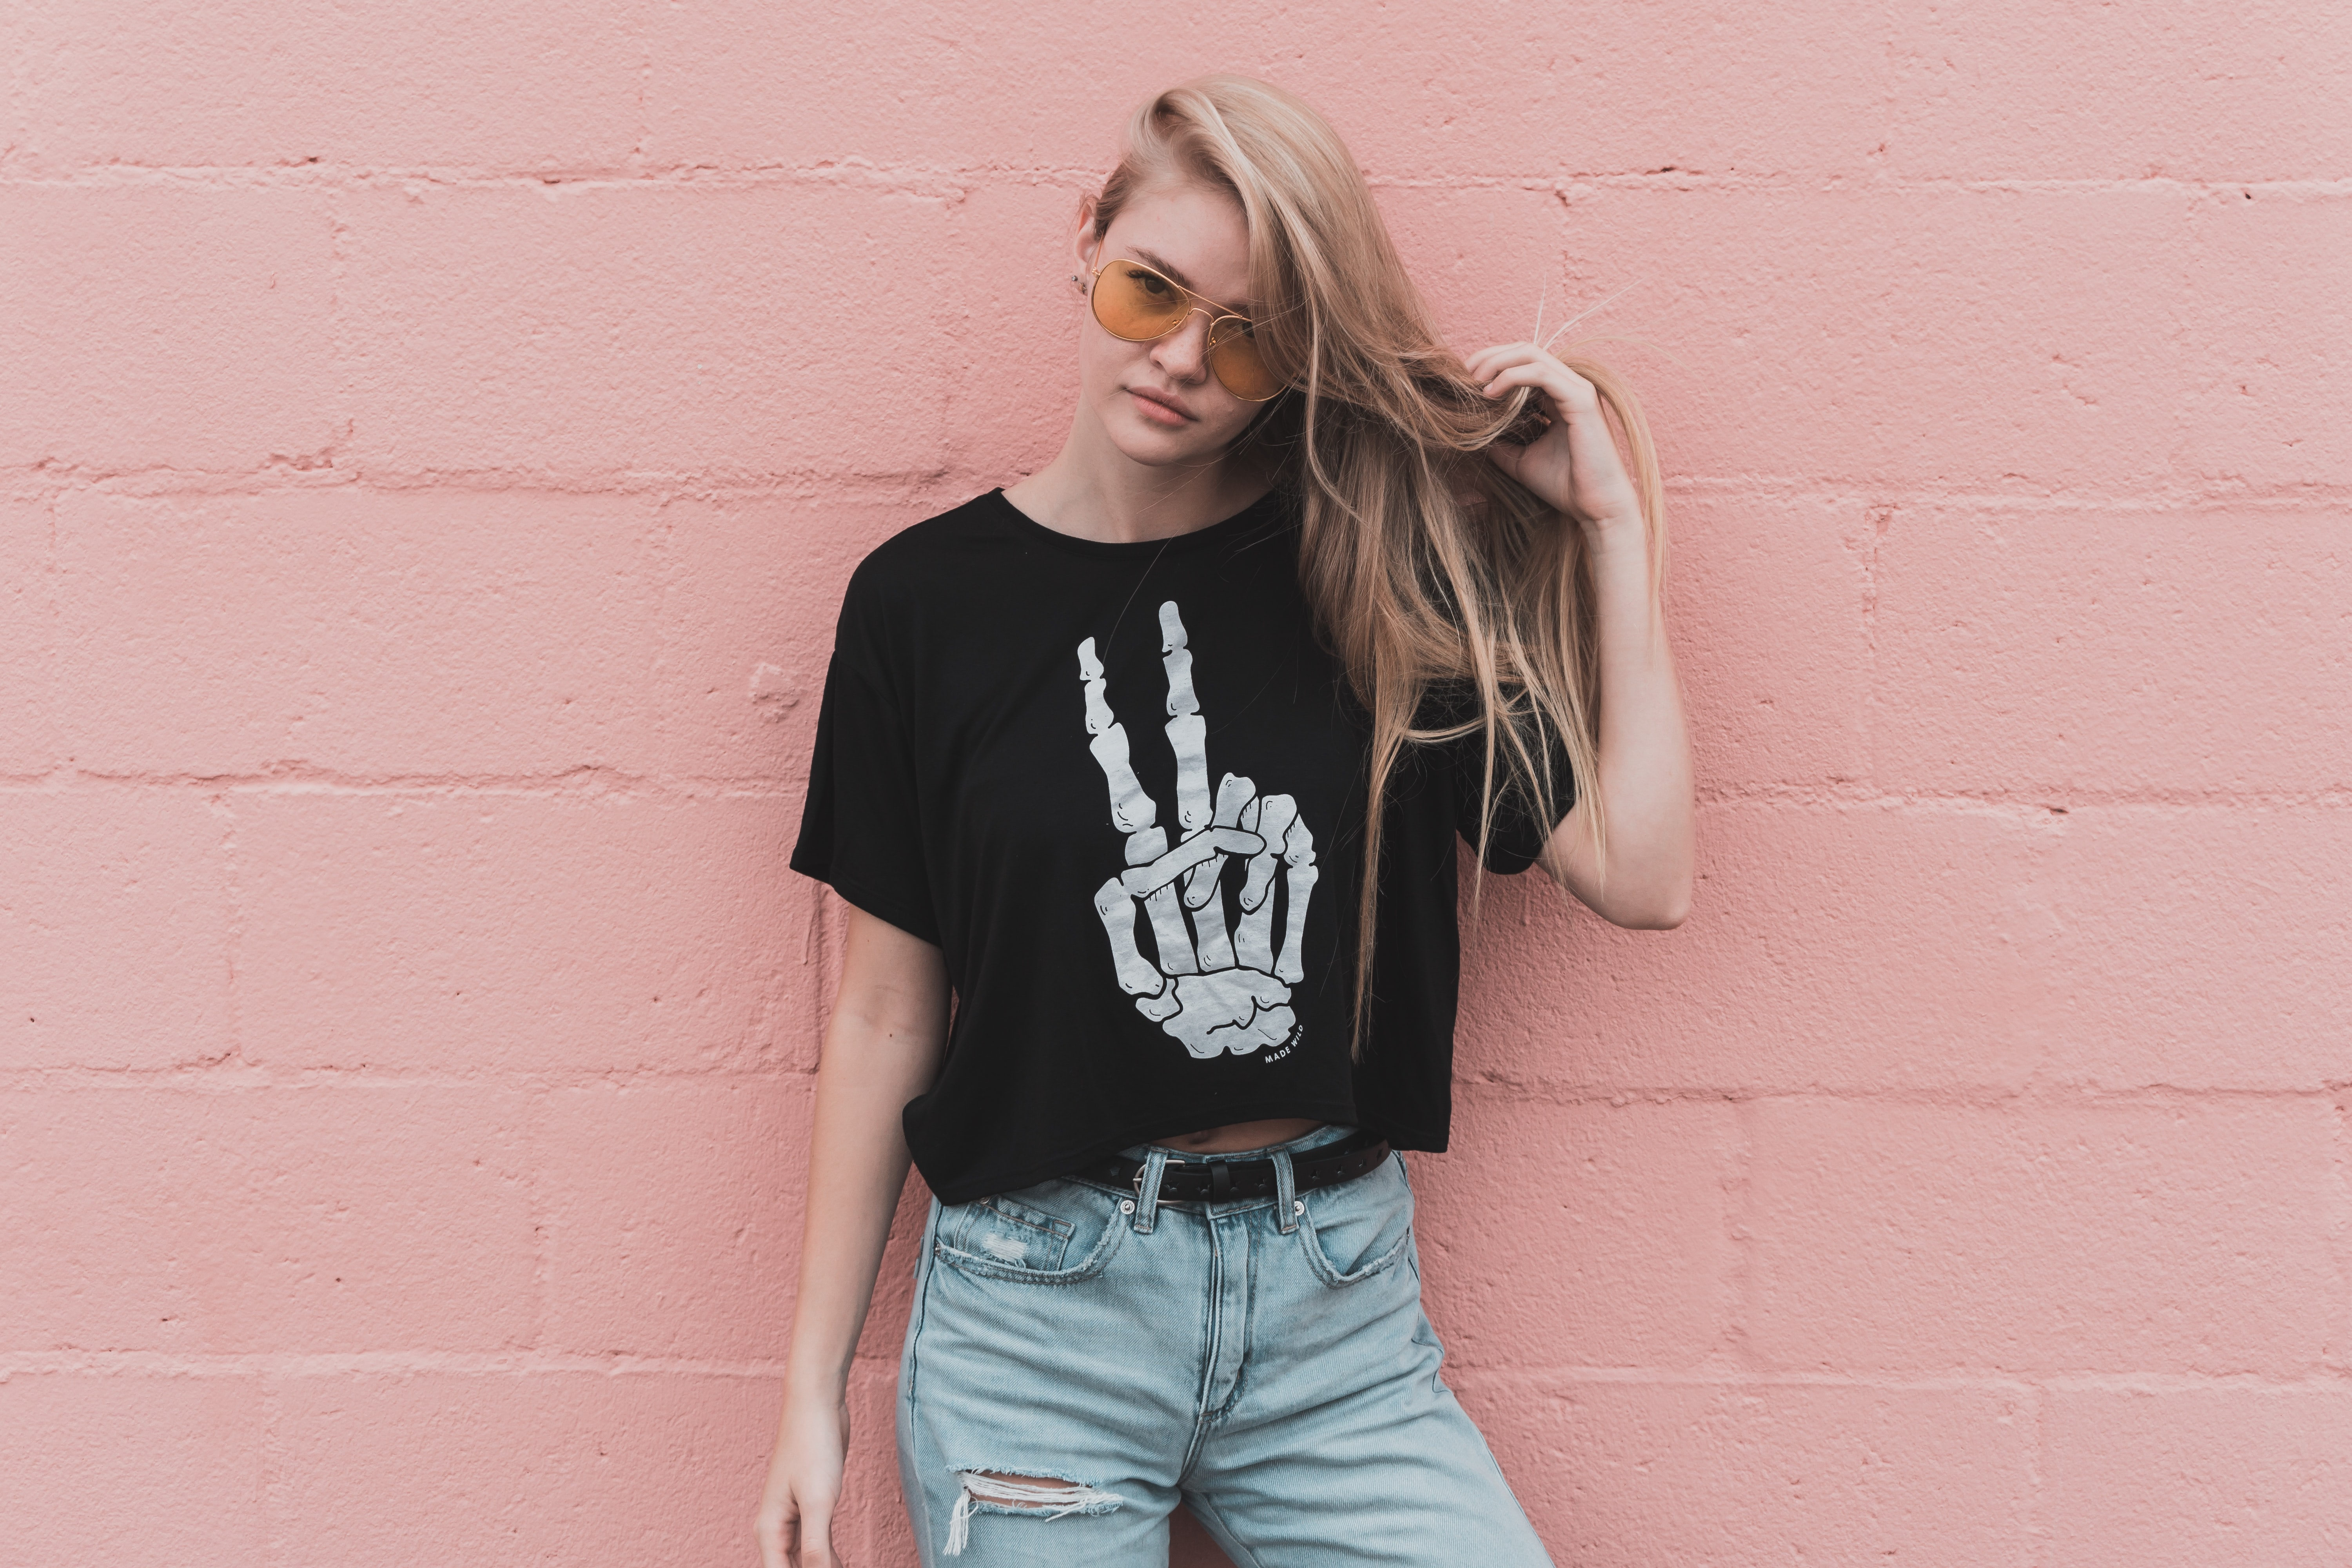 Trendy young woman in a skeleton shirt by a pink wall